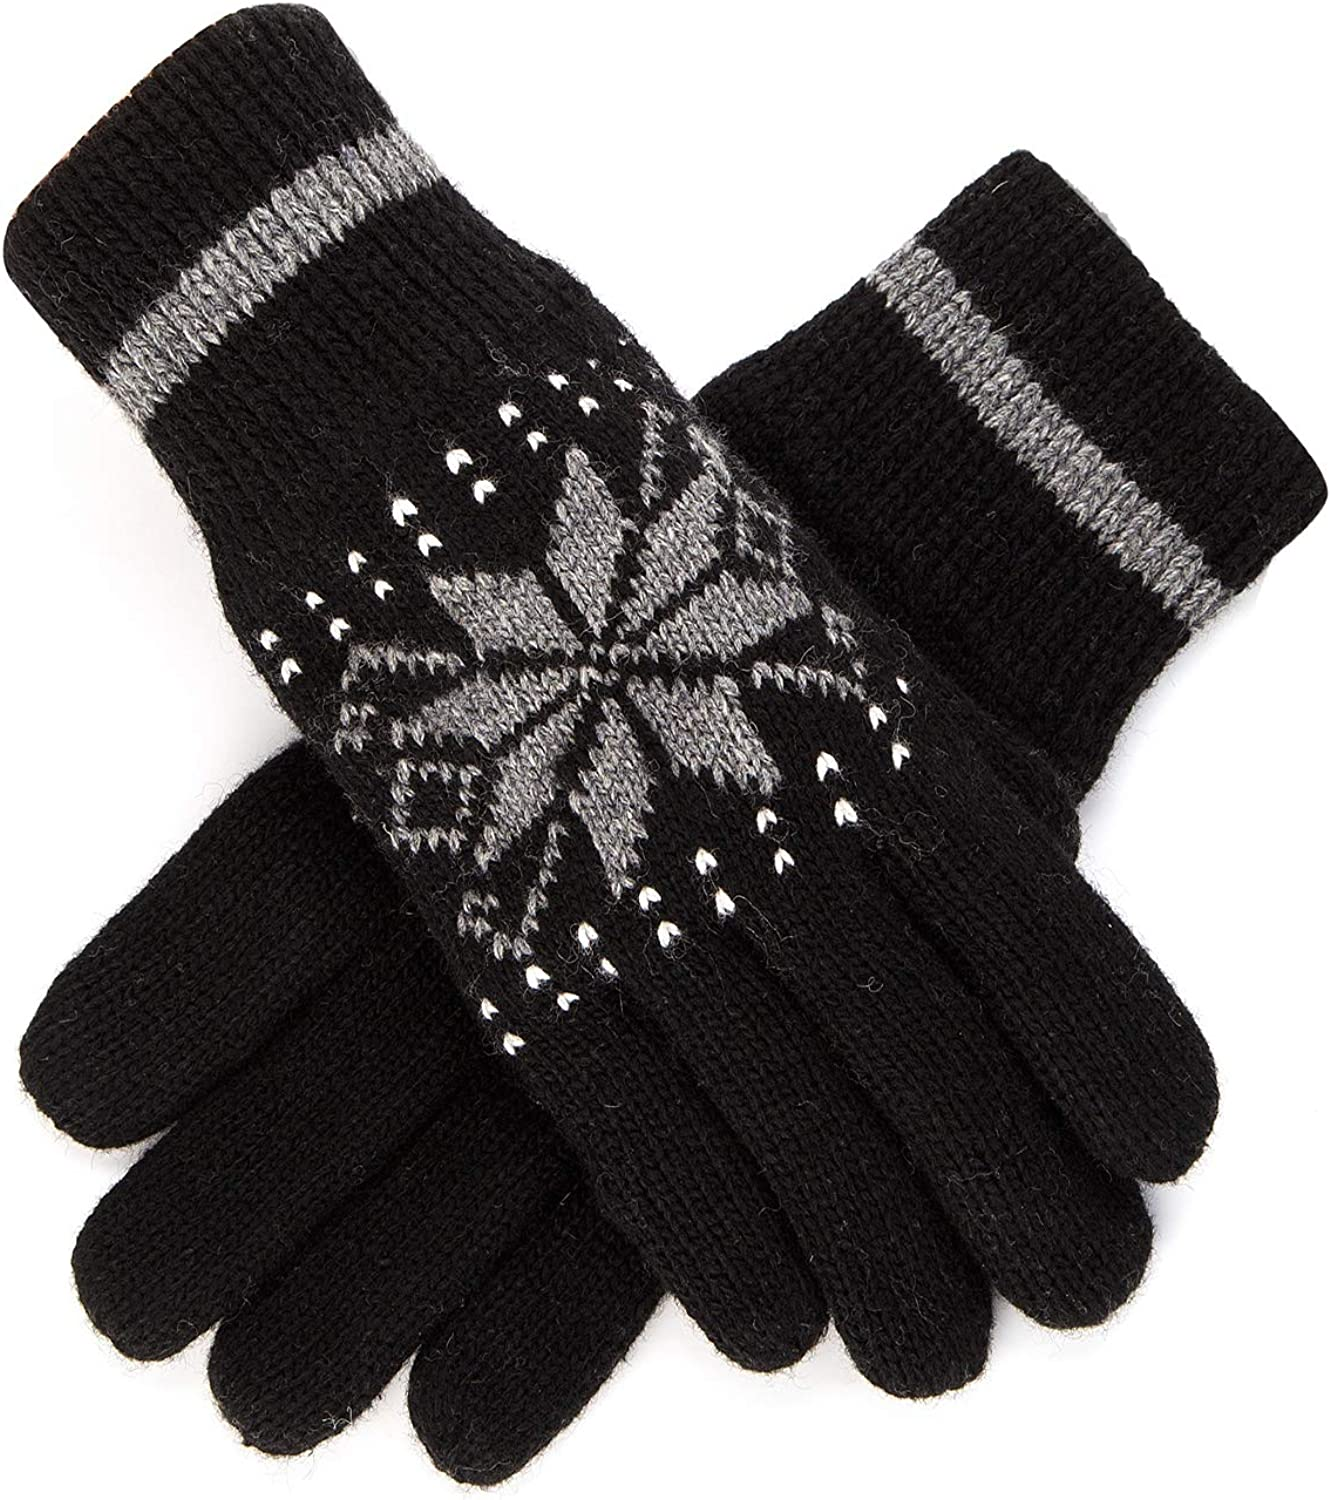 Women's Winter Knitted Gloves Thick Wool Warm Cold Weather Cable Knit Gloves